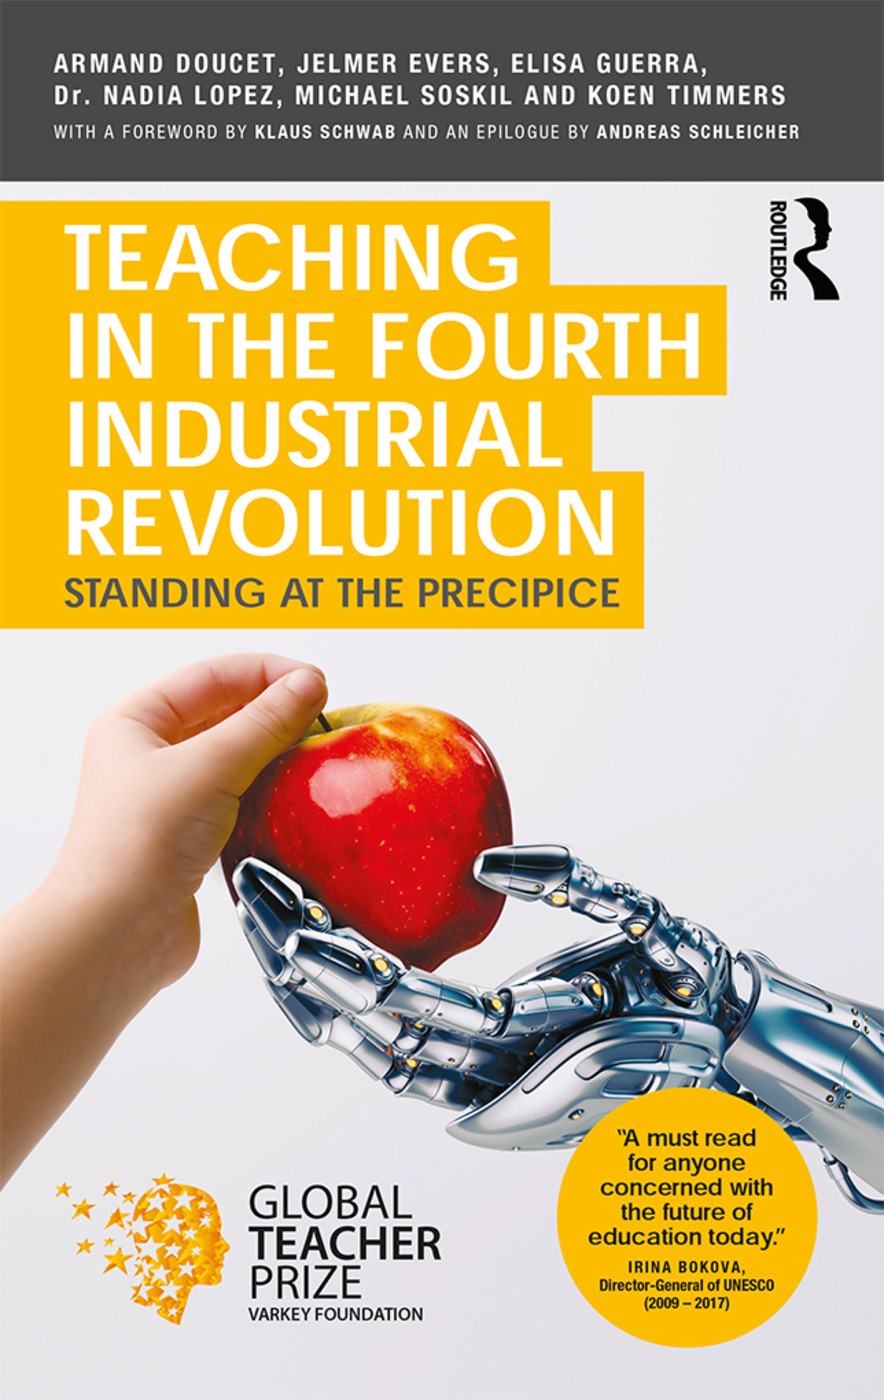 https://www.routledge.com/Teaching-in-the-Fourth-Industrial-Revolution-Standing-at-the-Precipice/Doucet-Evers-Guerra-Lopez-Soskil-Timmers/p/book/9781138483231